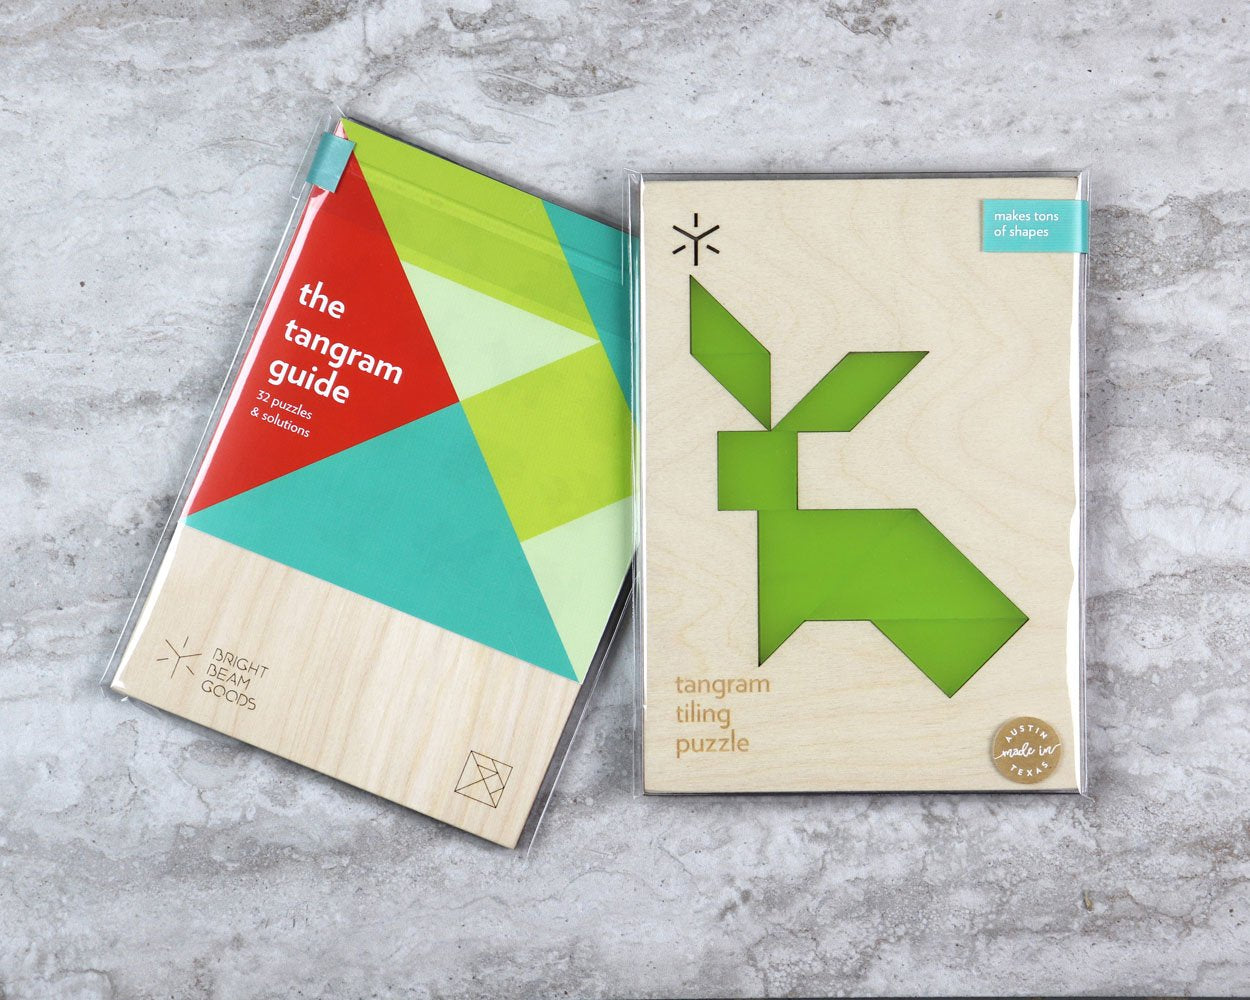 Rabbit tangram puzzle in packaging